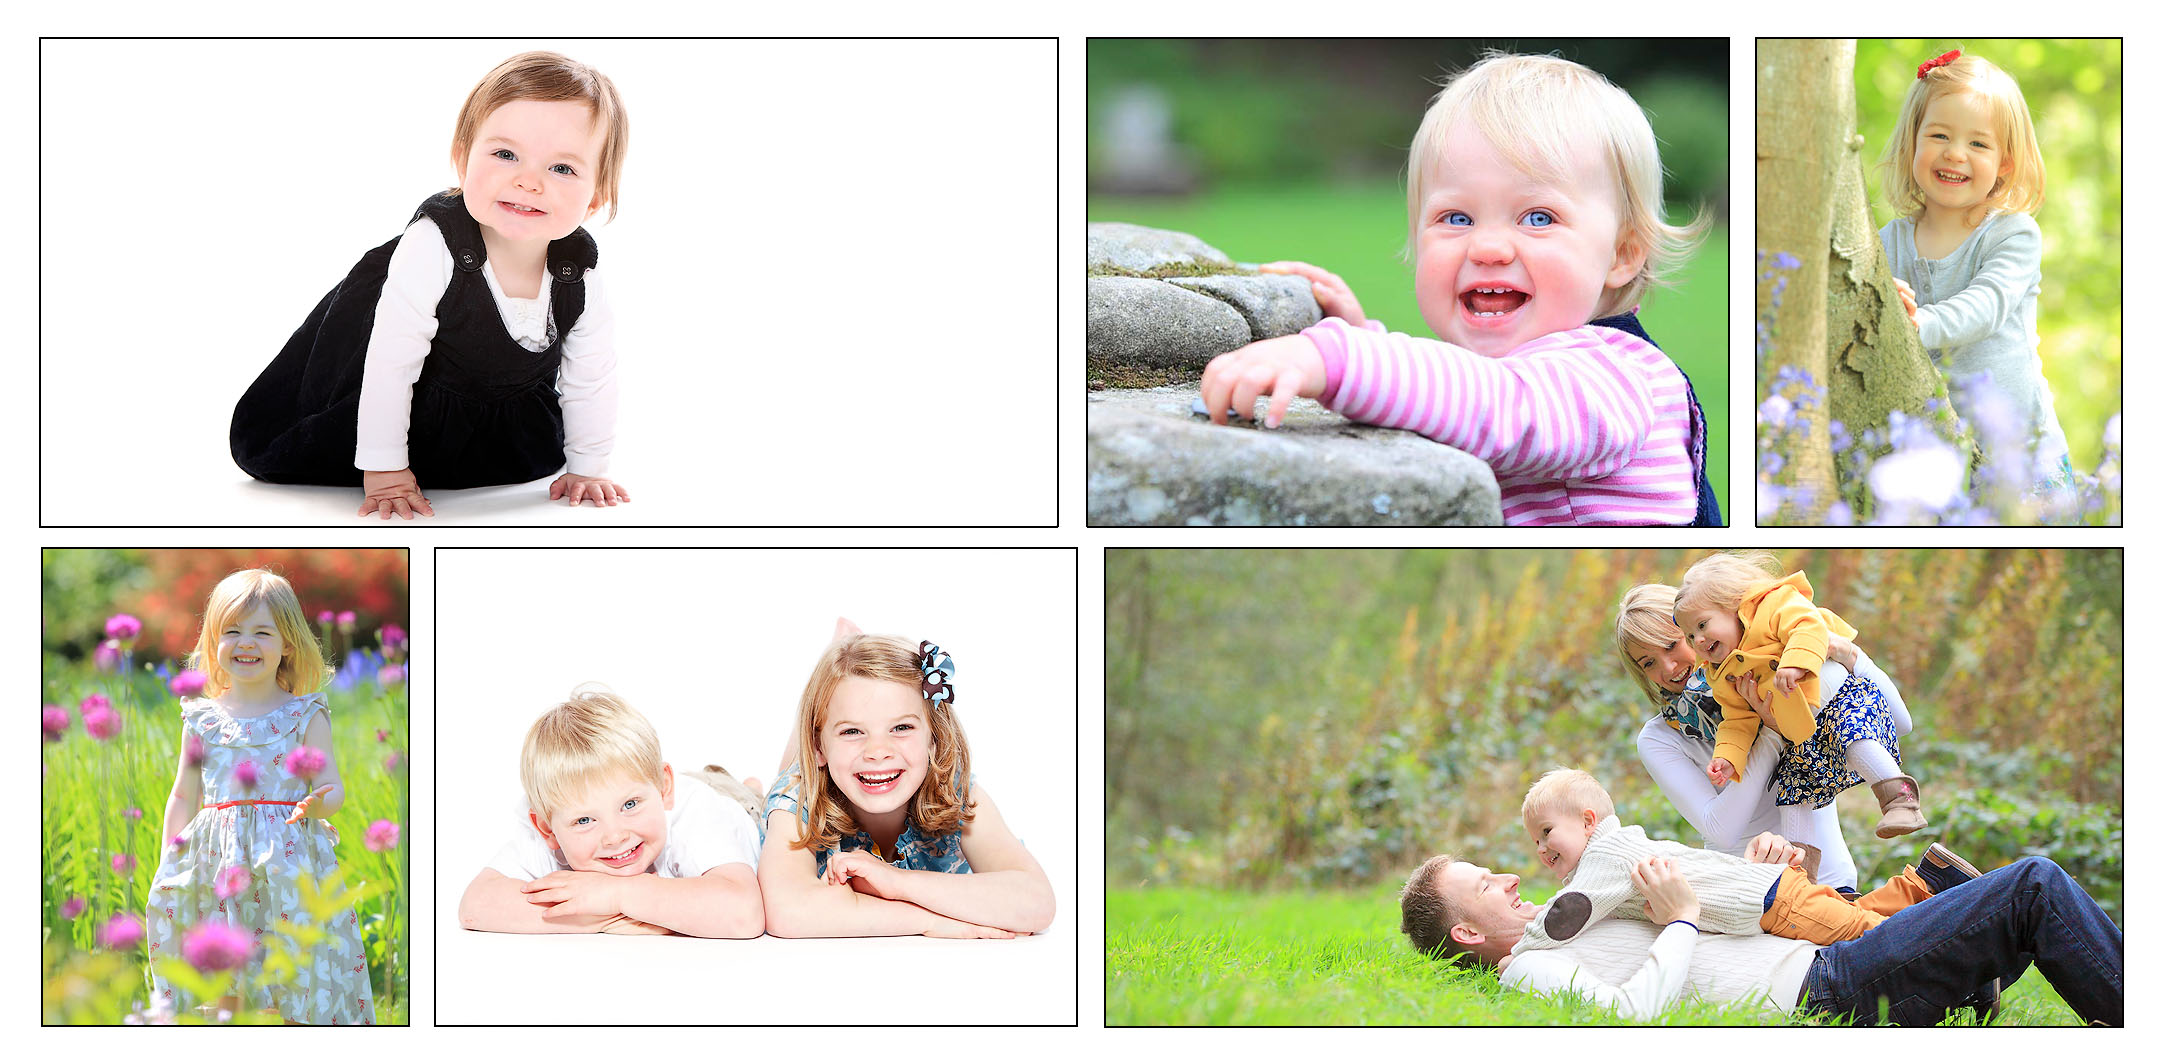 Family & Childrens Photography Sessions In Harrogate, Leeds & York Areas